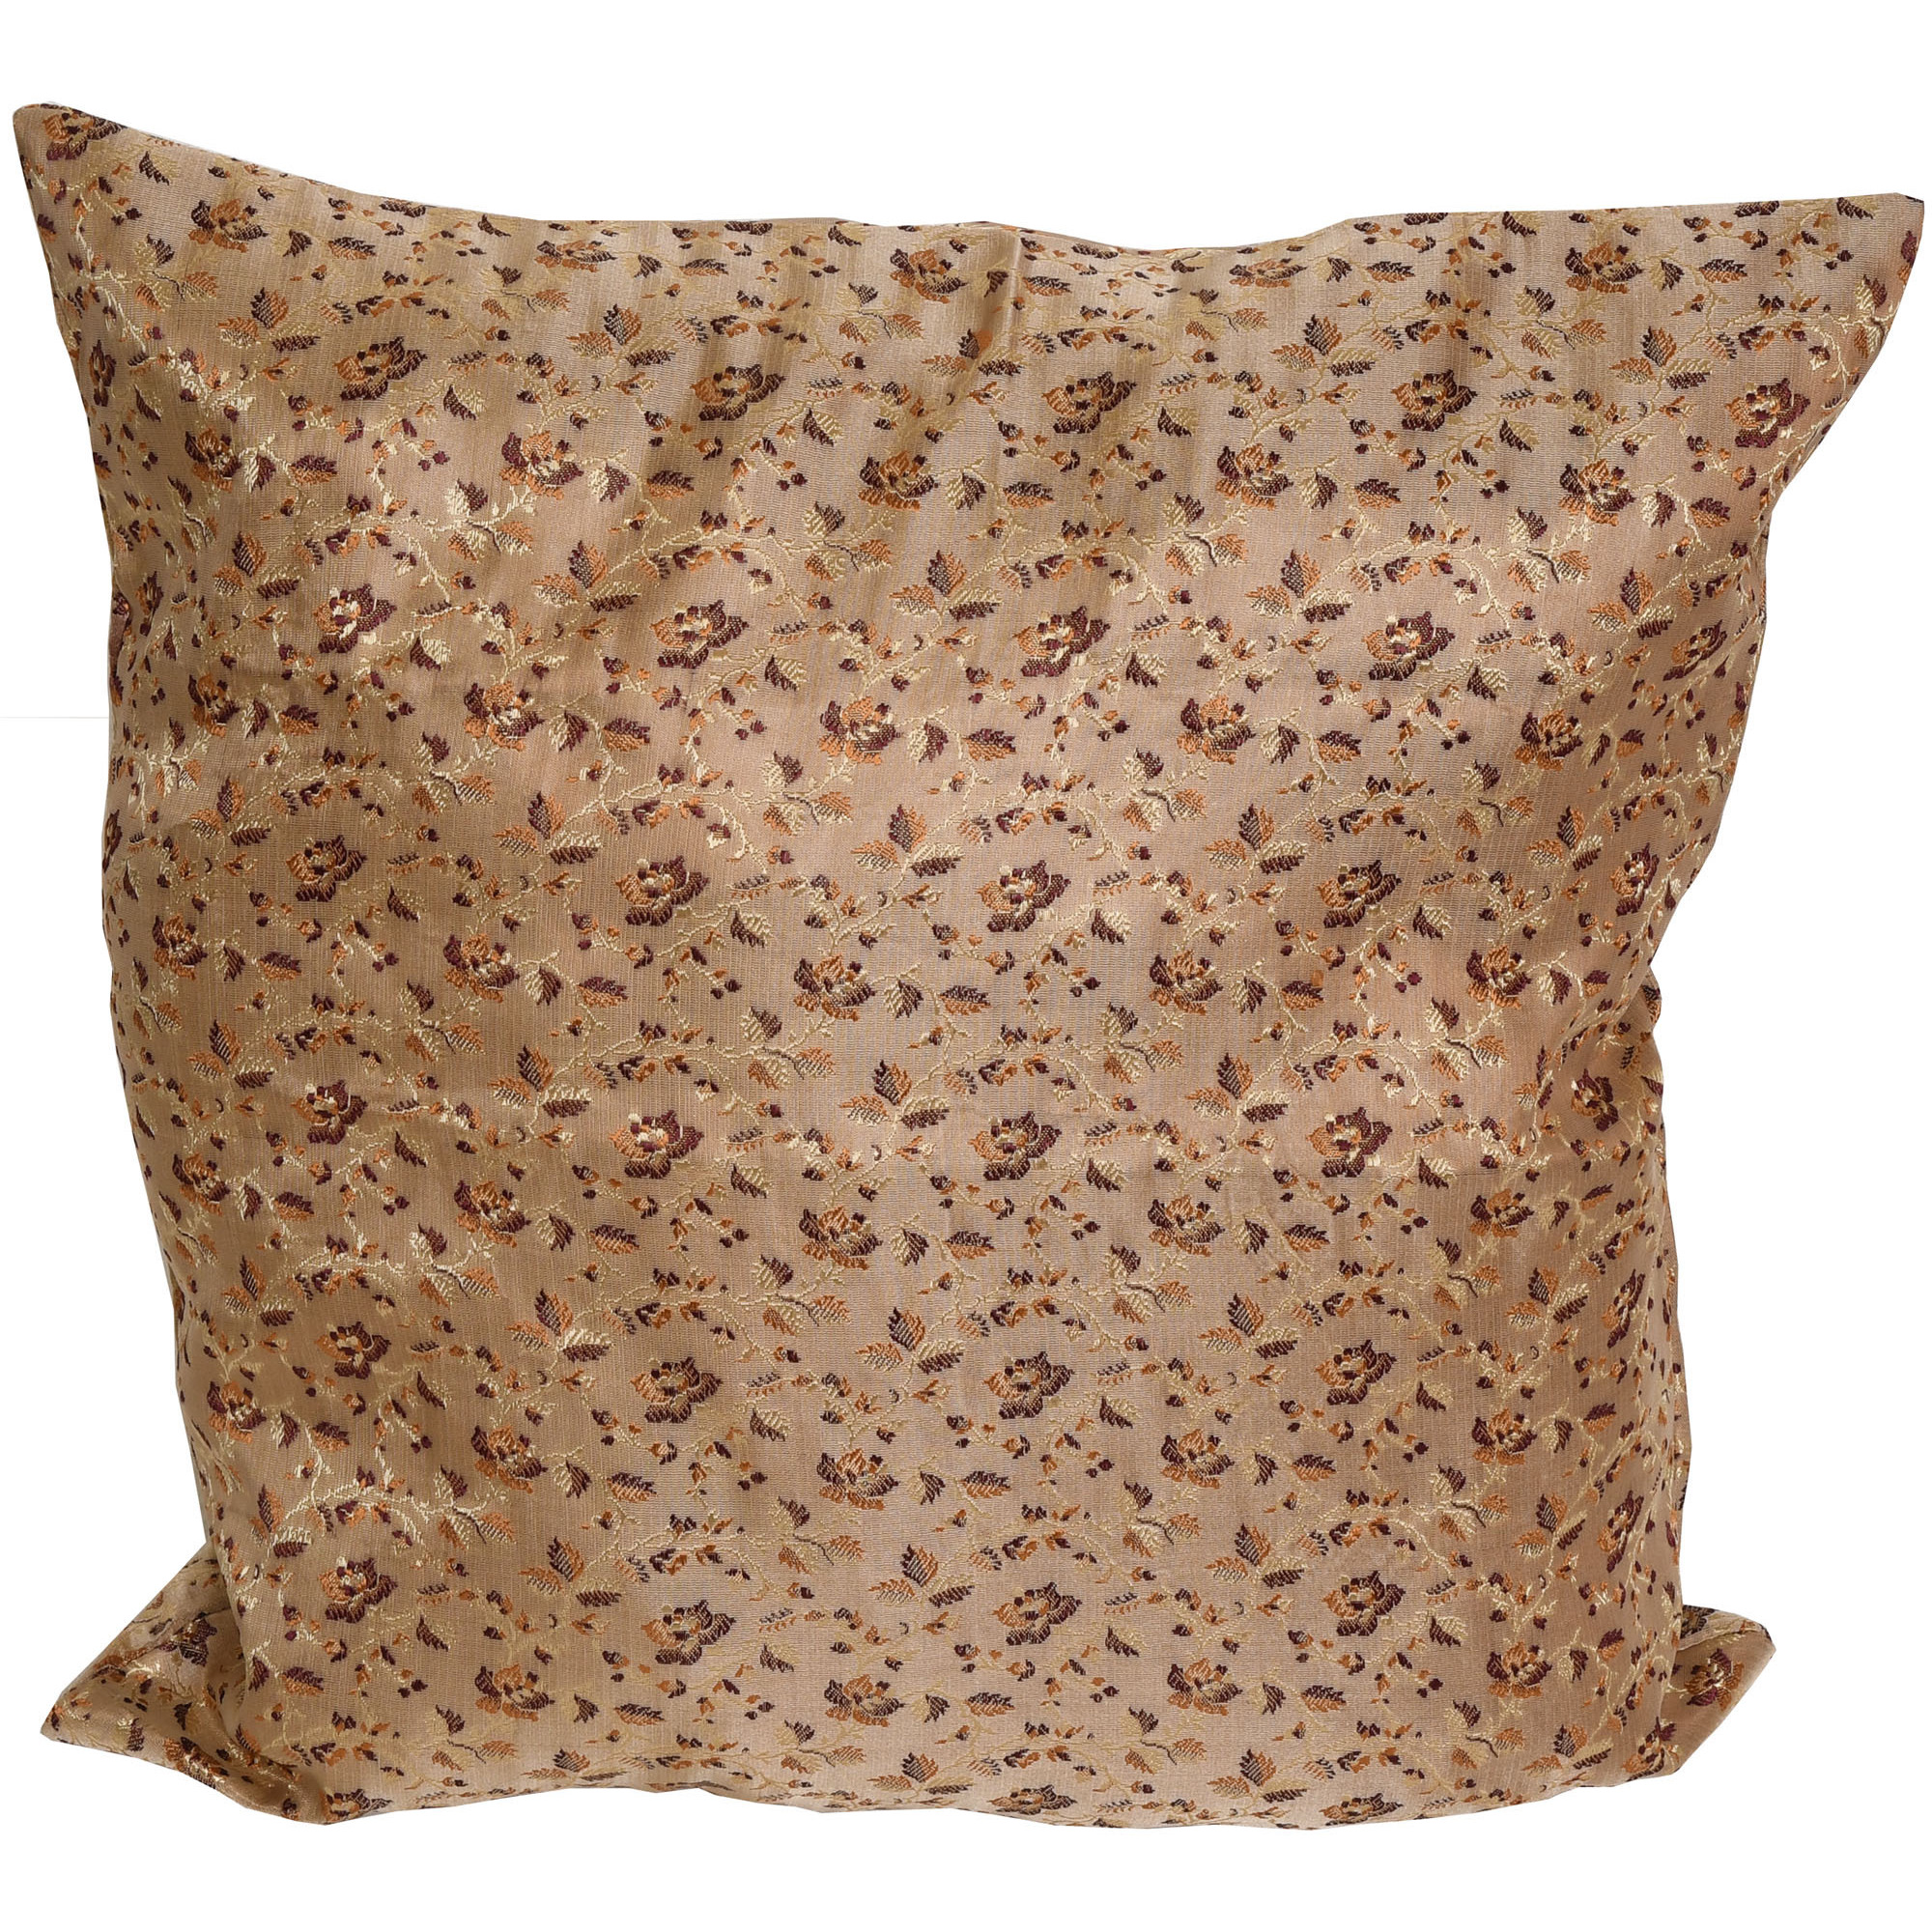 Beige Cushion Cover with Floral Weave All-Over